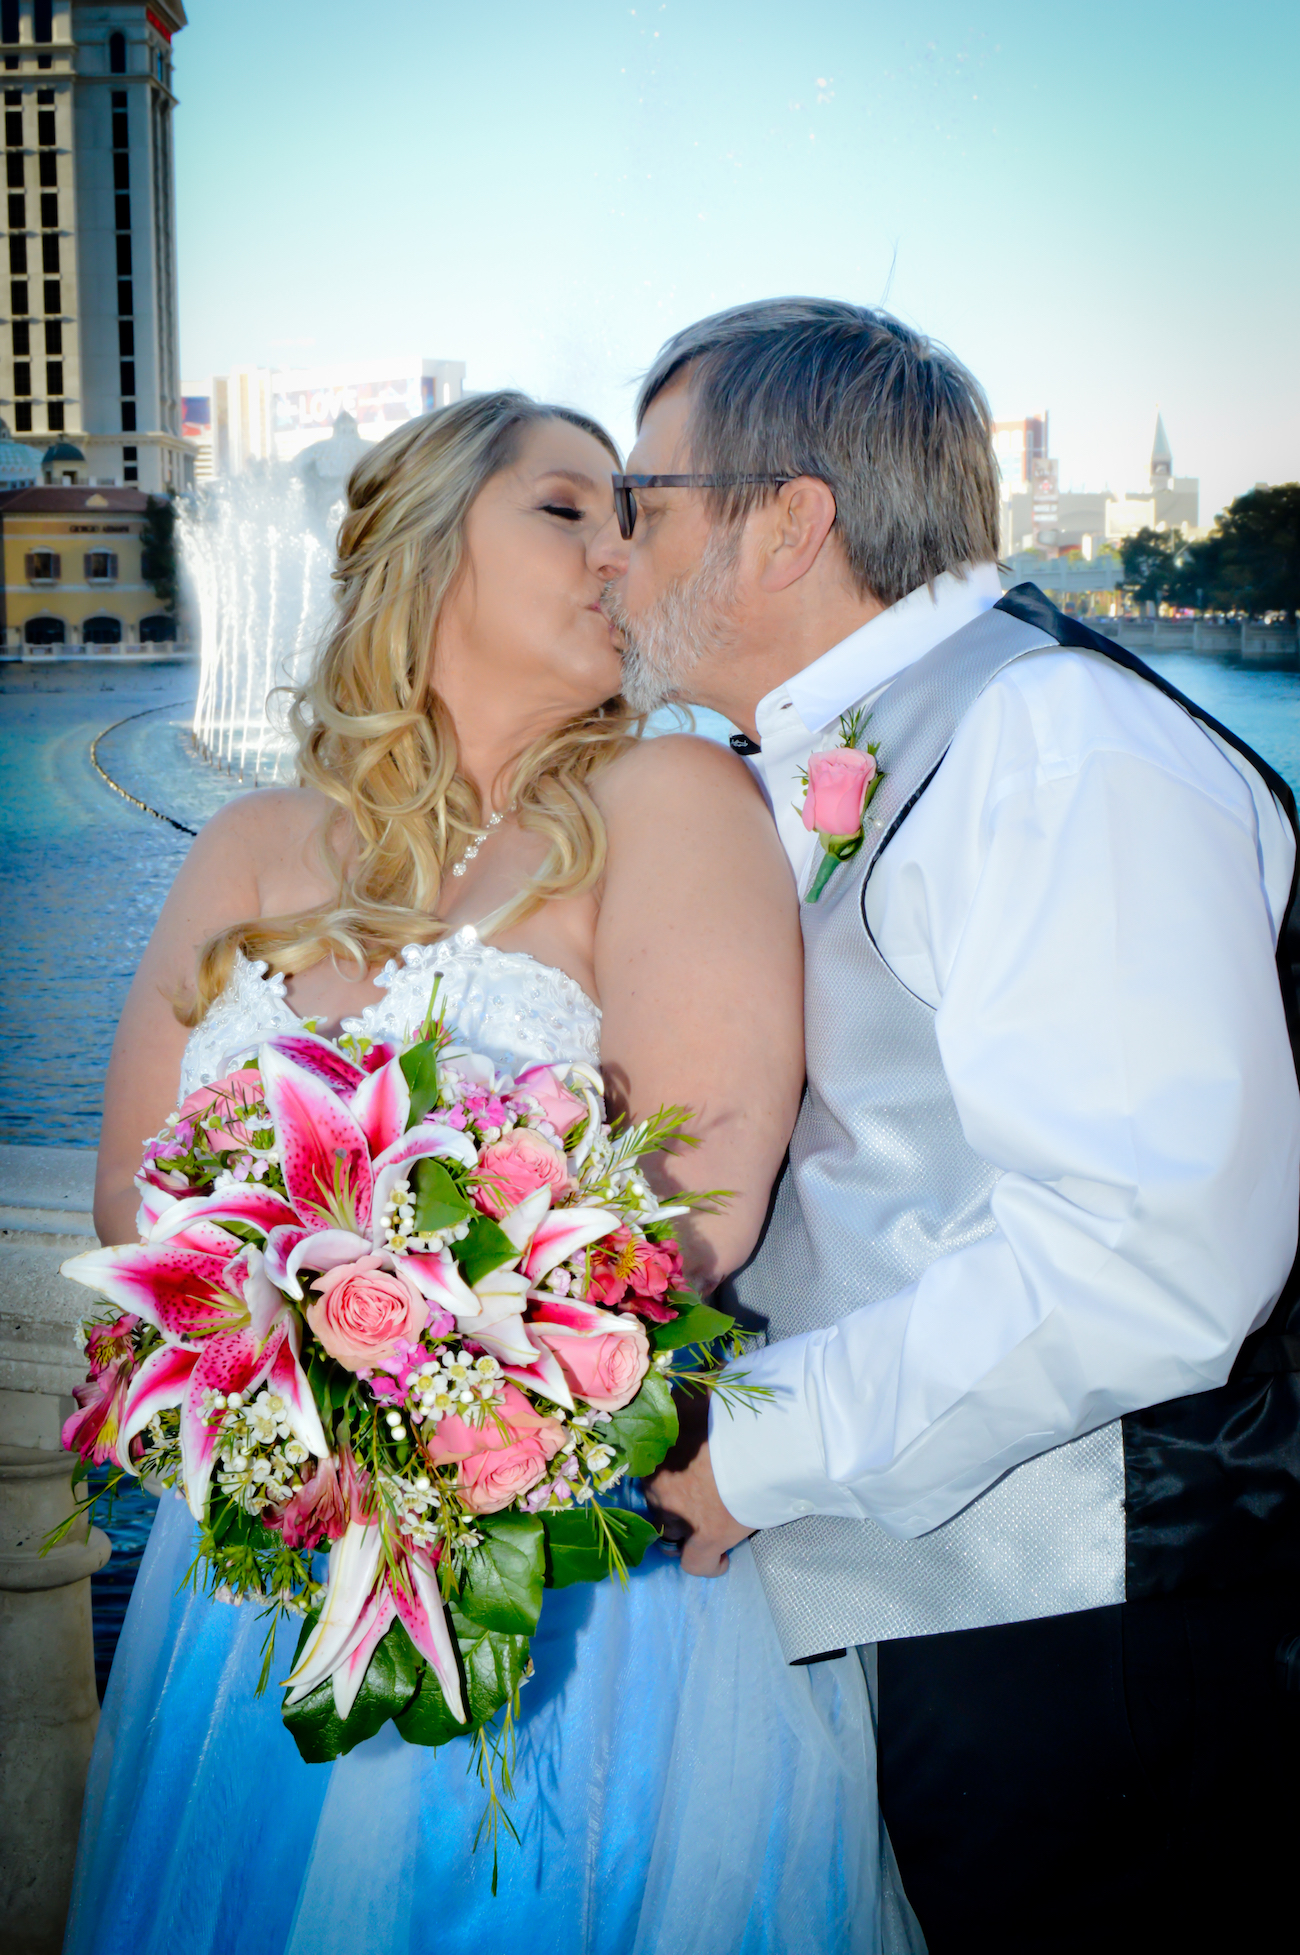 Las Vegas Strip Wedding Photography Mon Bel Ami